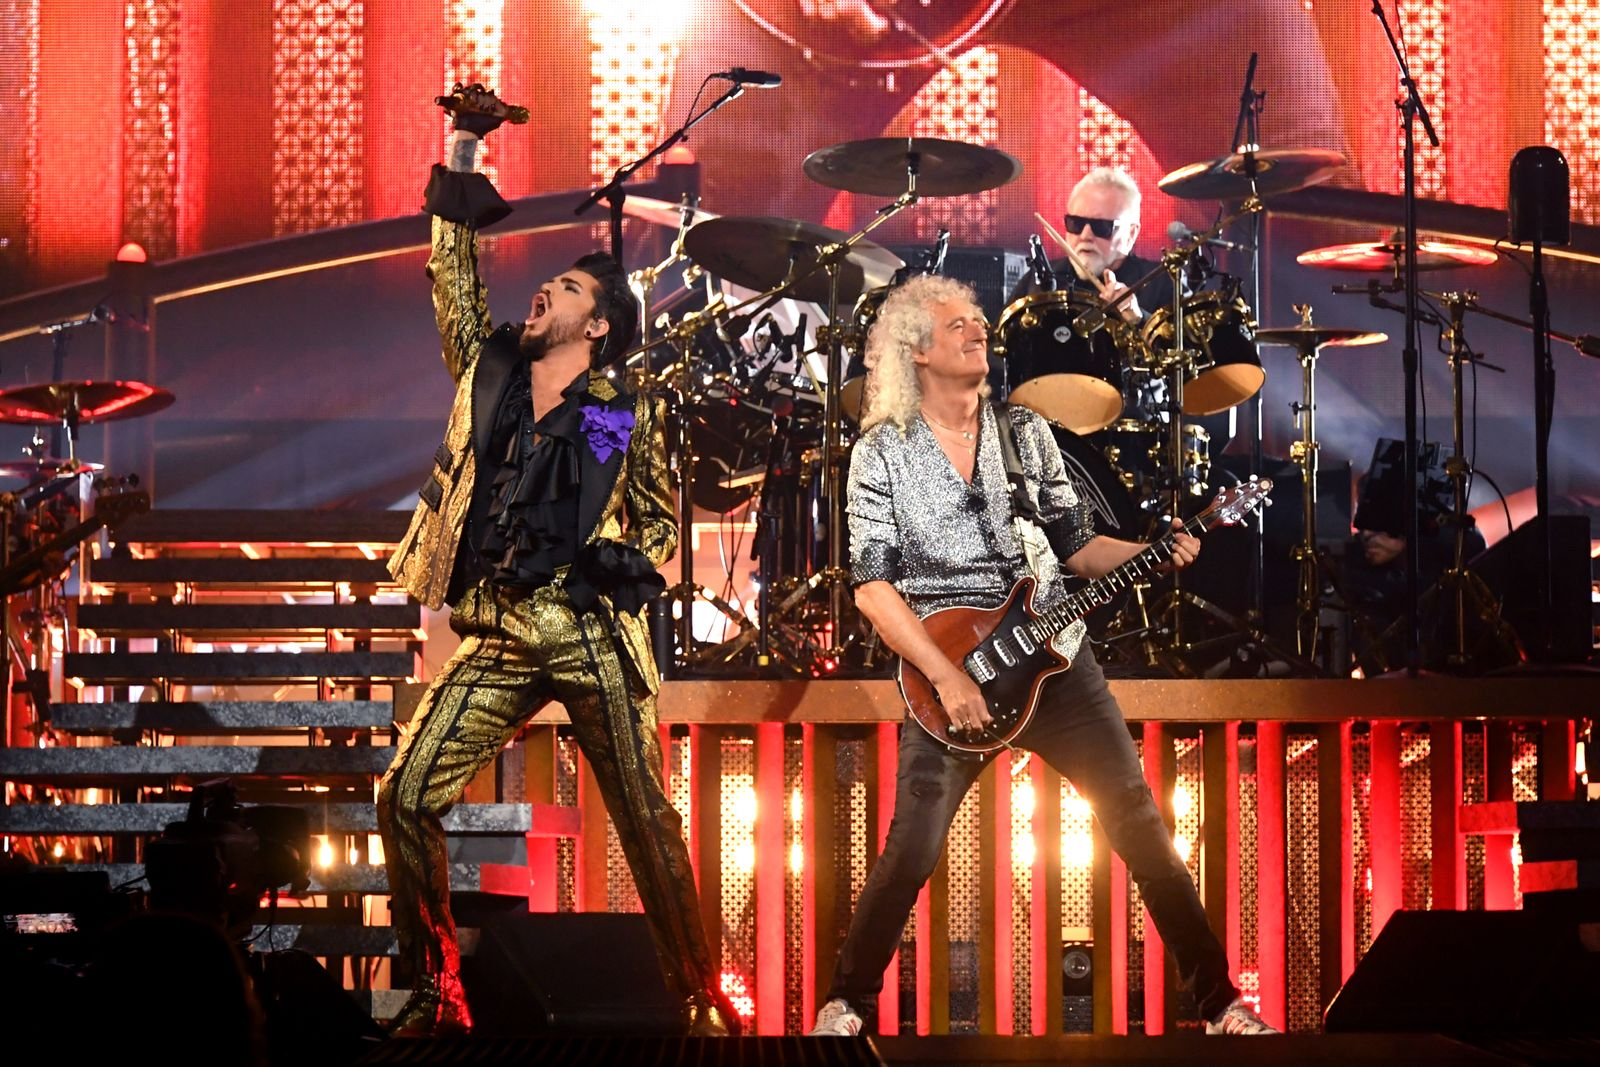 Queen + Adam Lambert In Concert - New York, NY